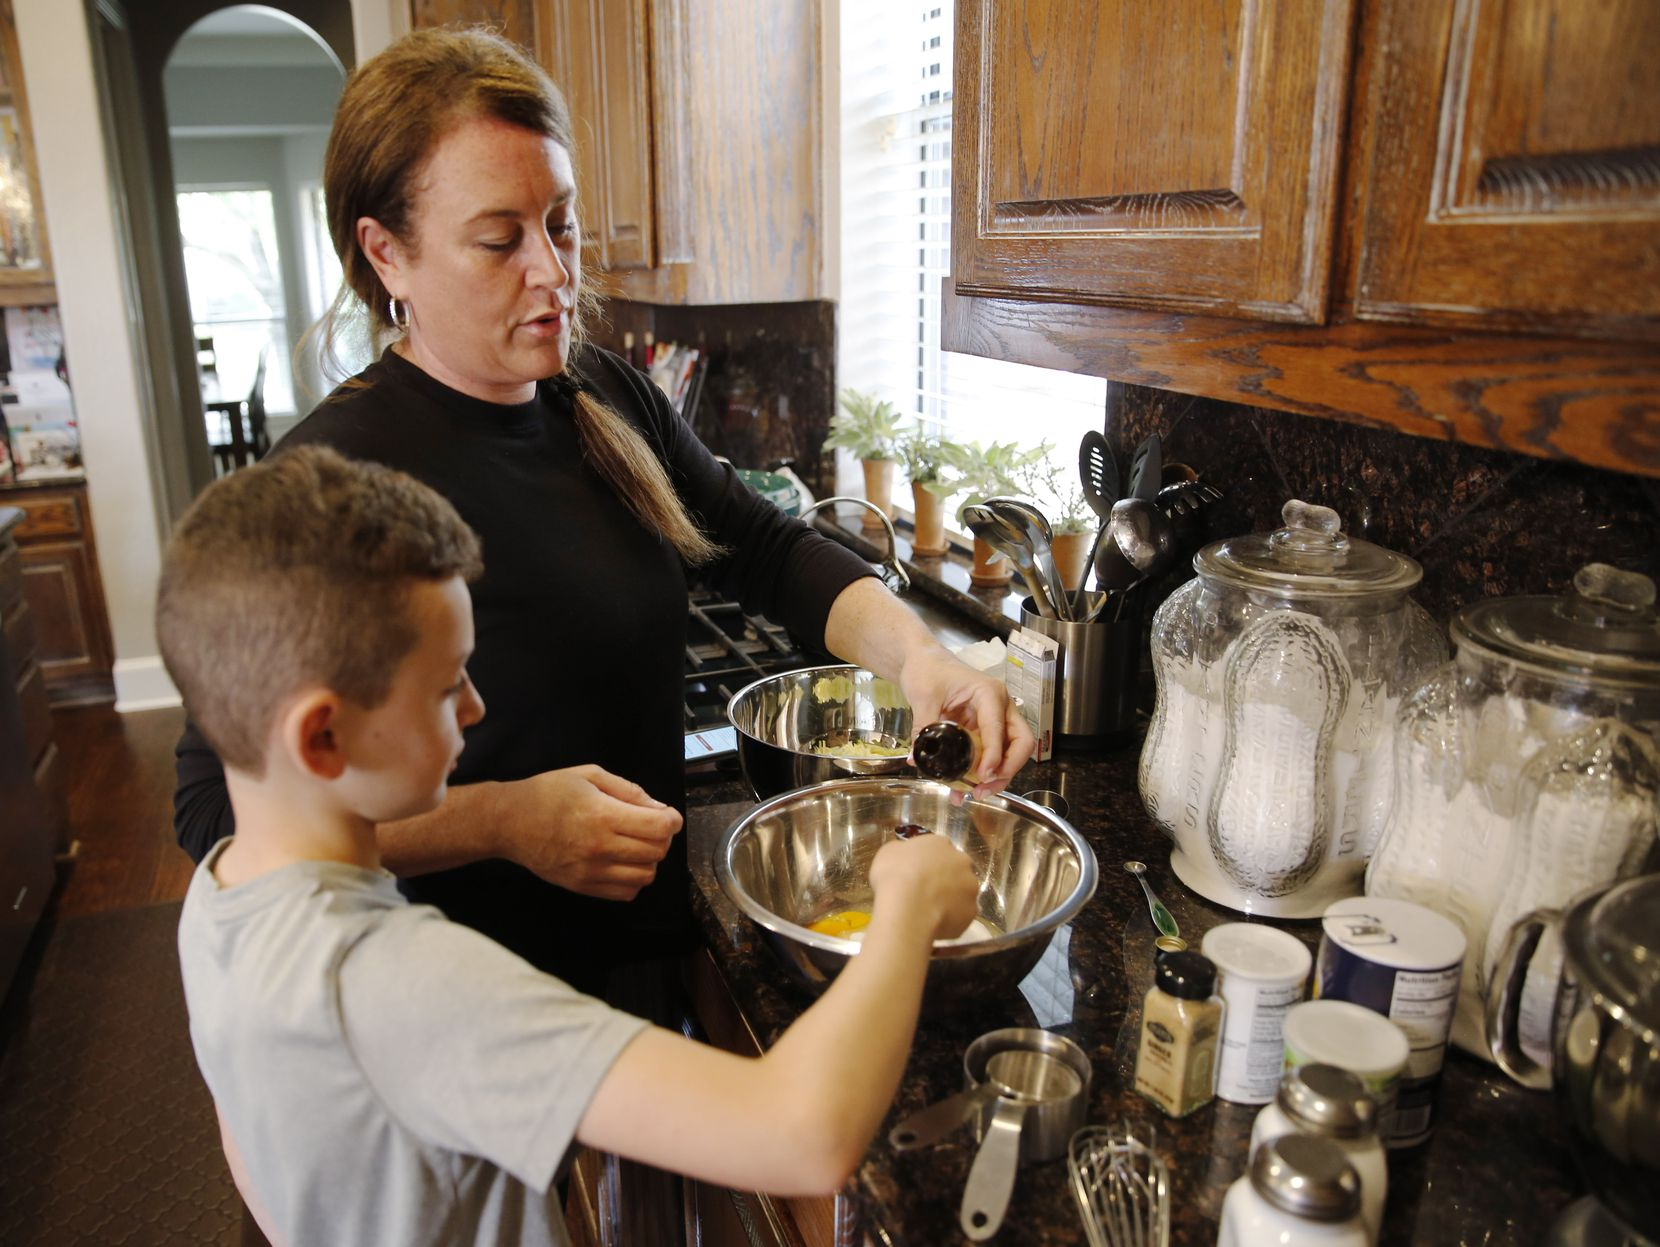 Frisco resident Jamie Heit and her son Brandon cooked together at their home in the early days of the pandemic after schools across North Texas went virtual.